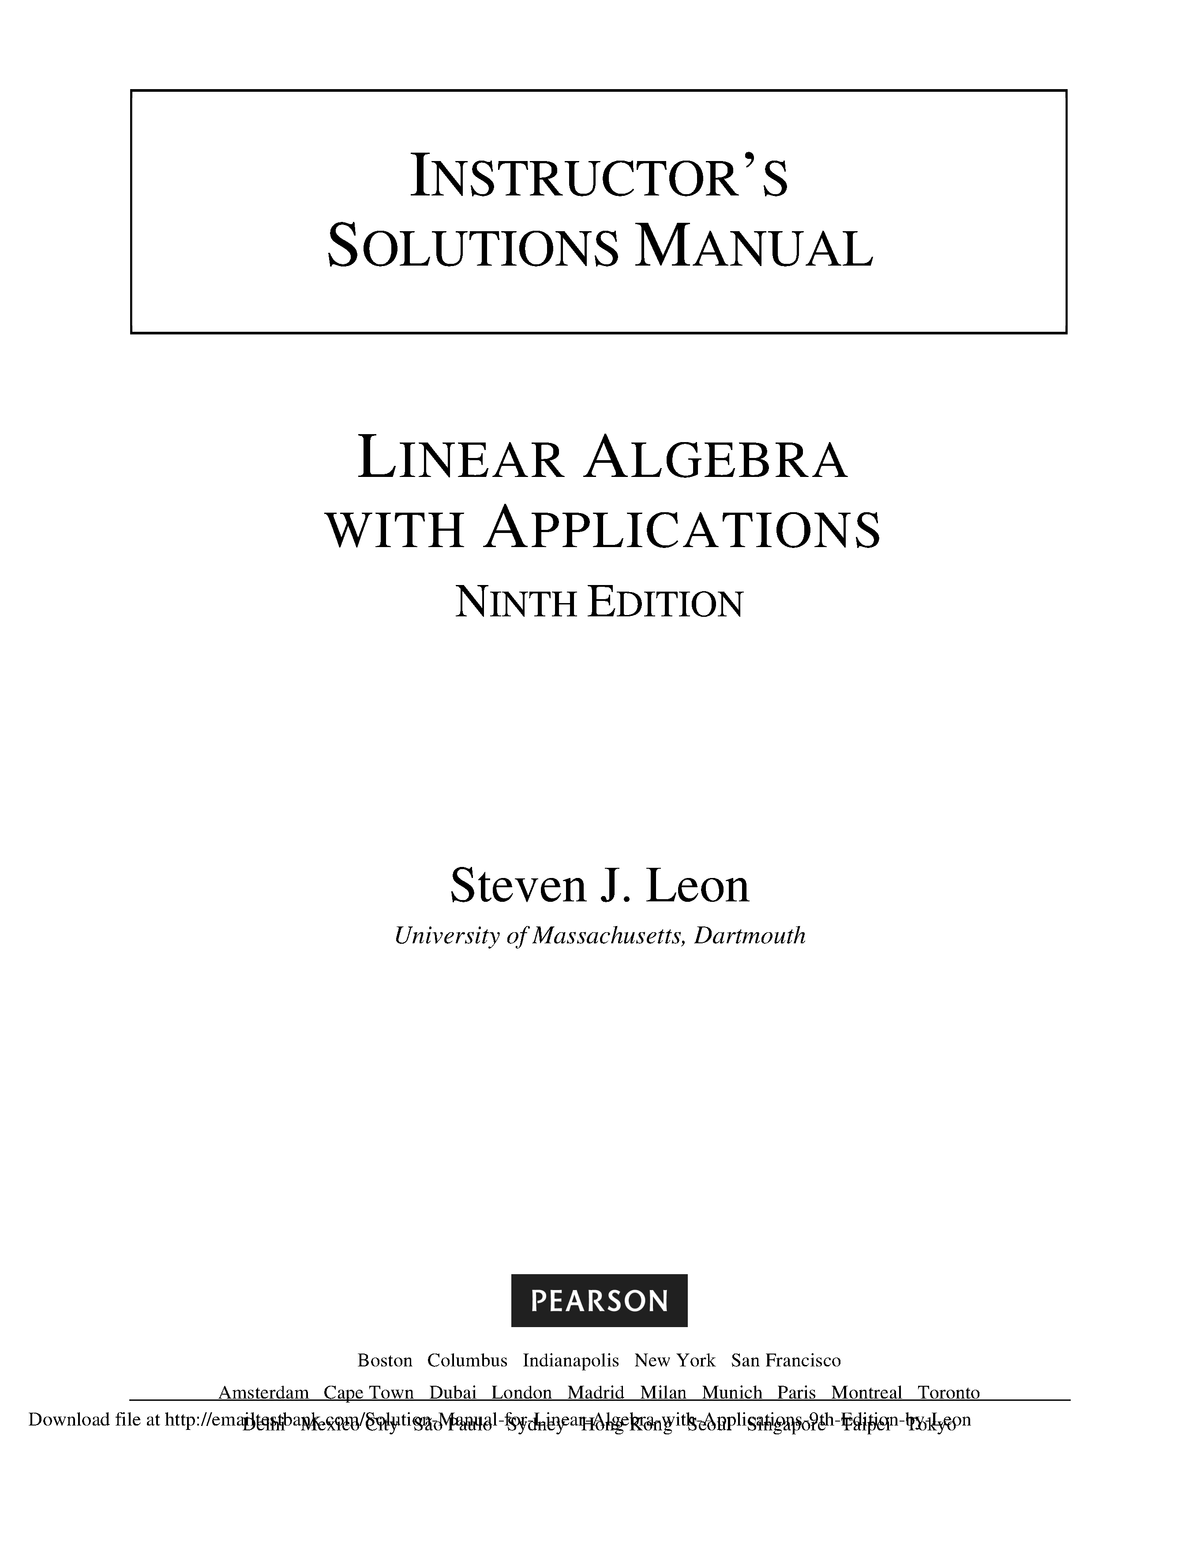 Elementary Linear Algebra 8th Edition Pdf Free